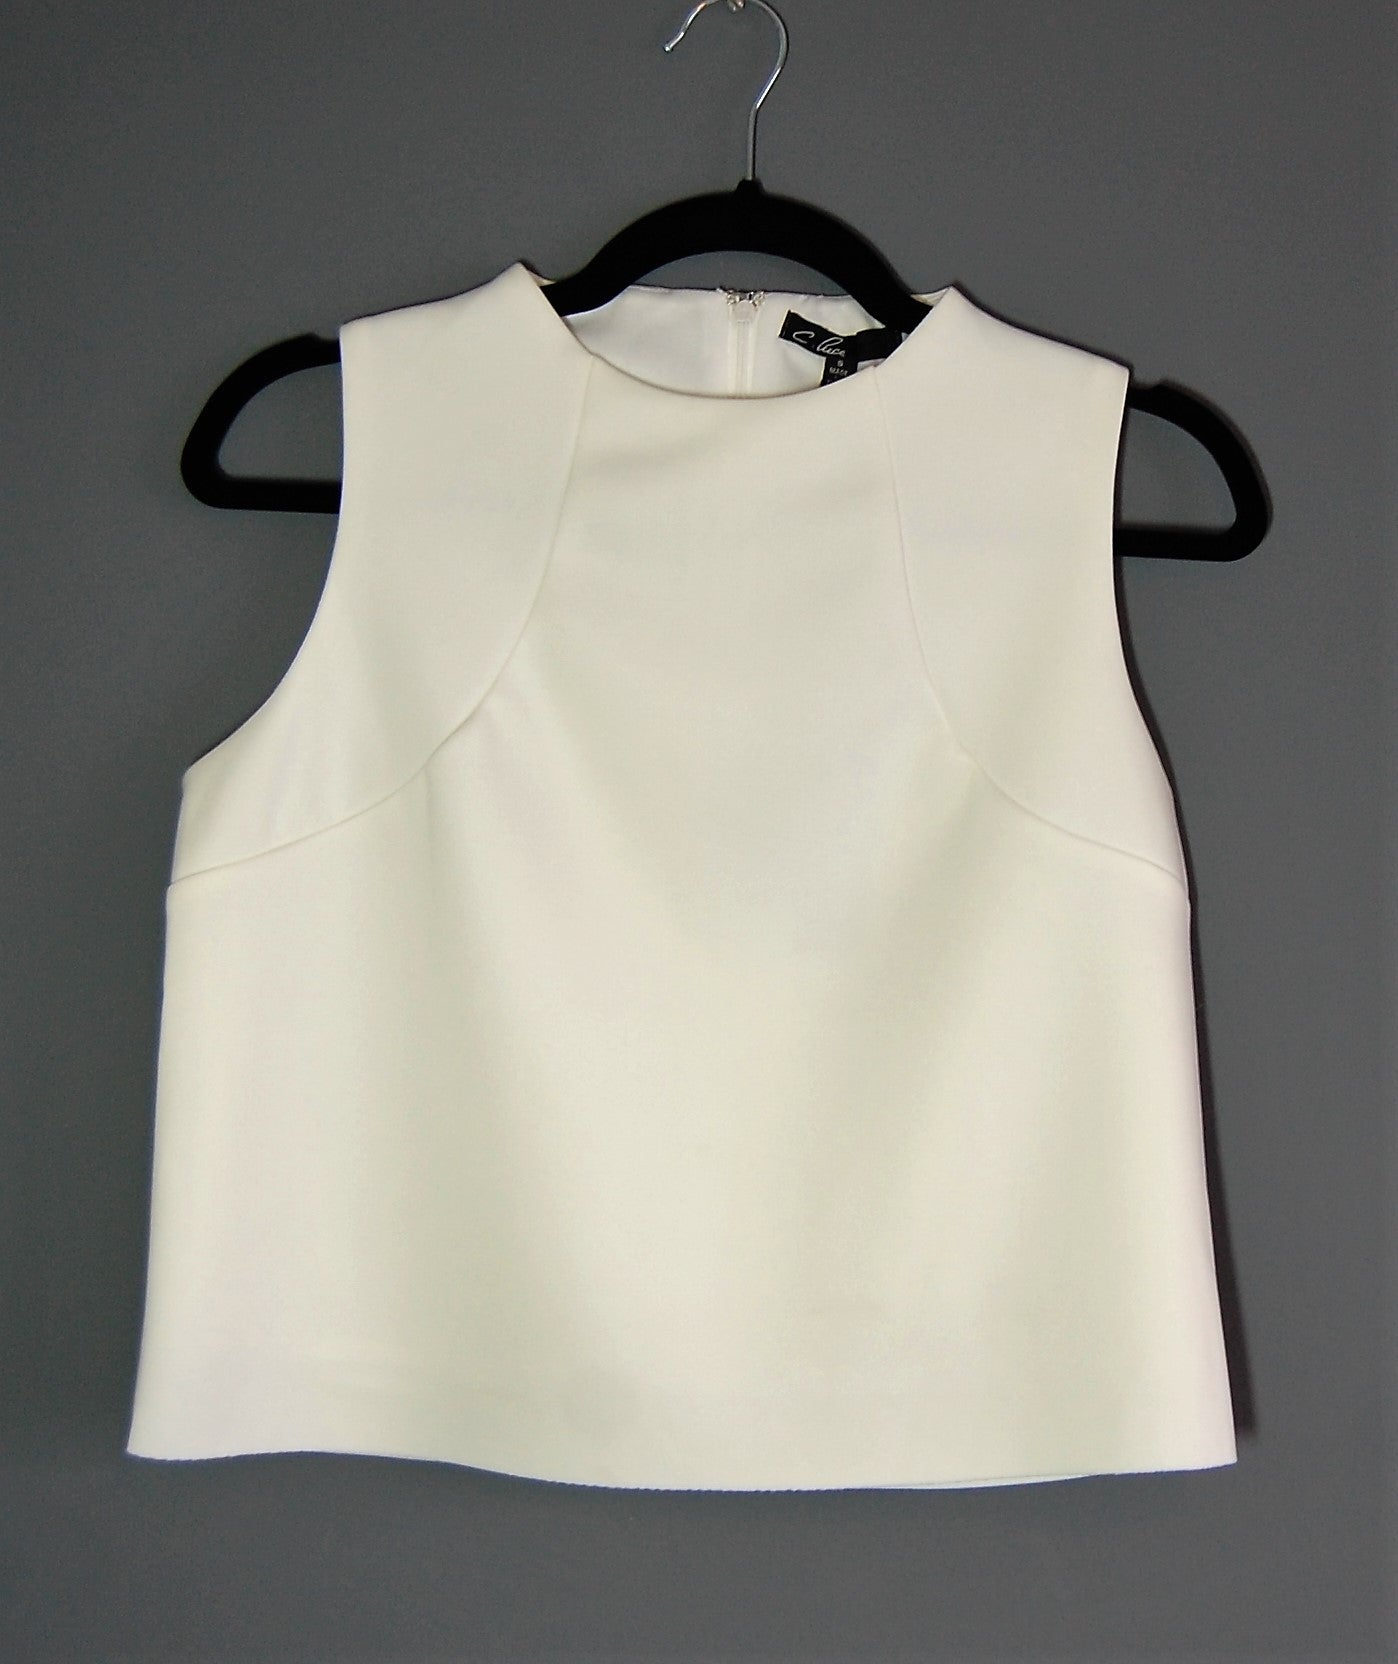 Neoprene Sleveless Crop Top